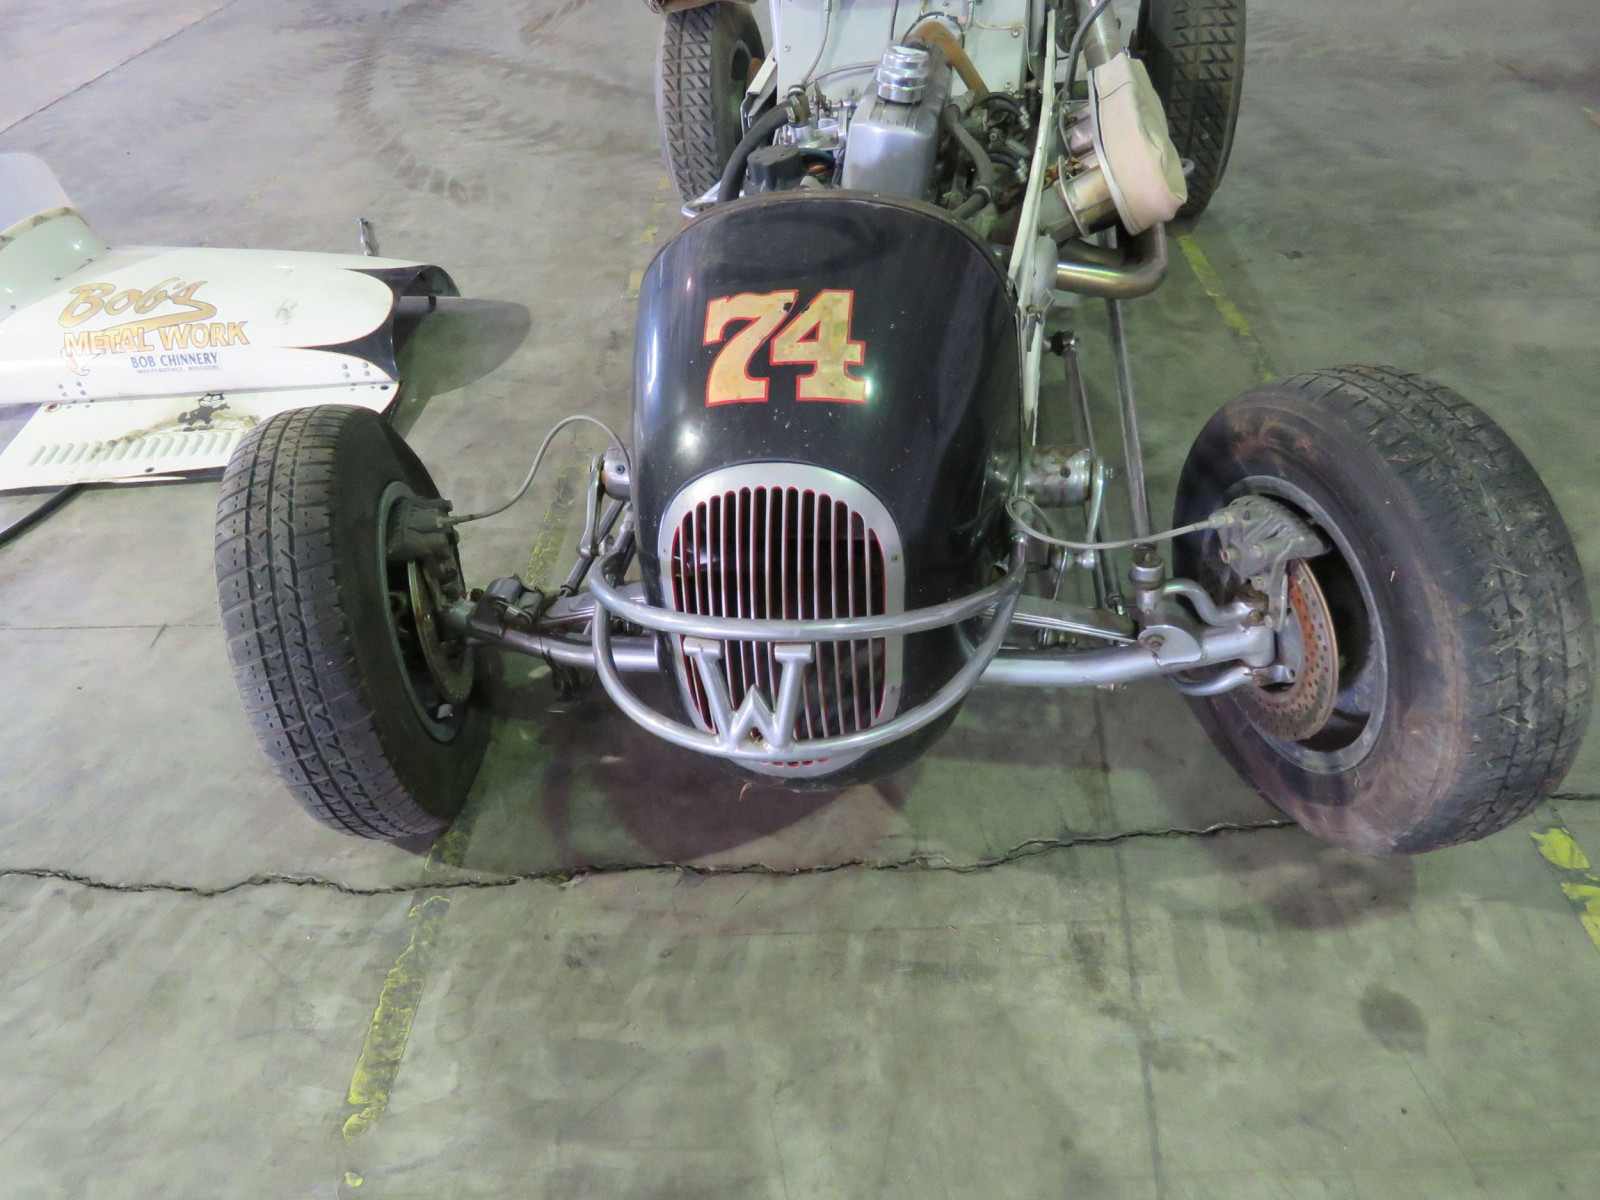 Rare 1947 Kurtis Kraft-Chimnery Midget Racecar and Trailer - Image 18